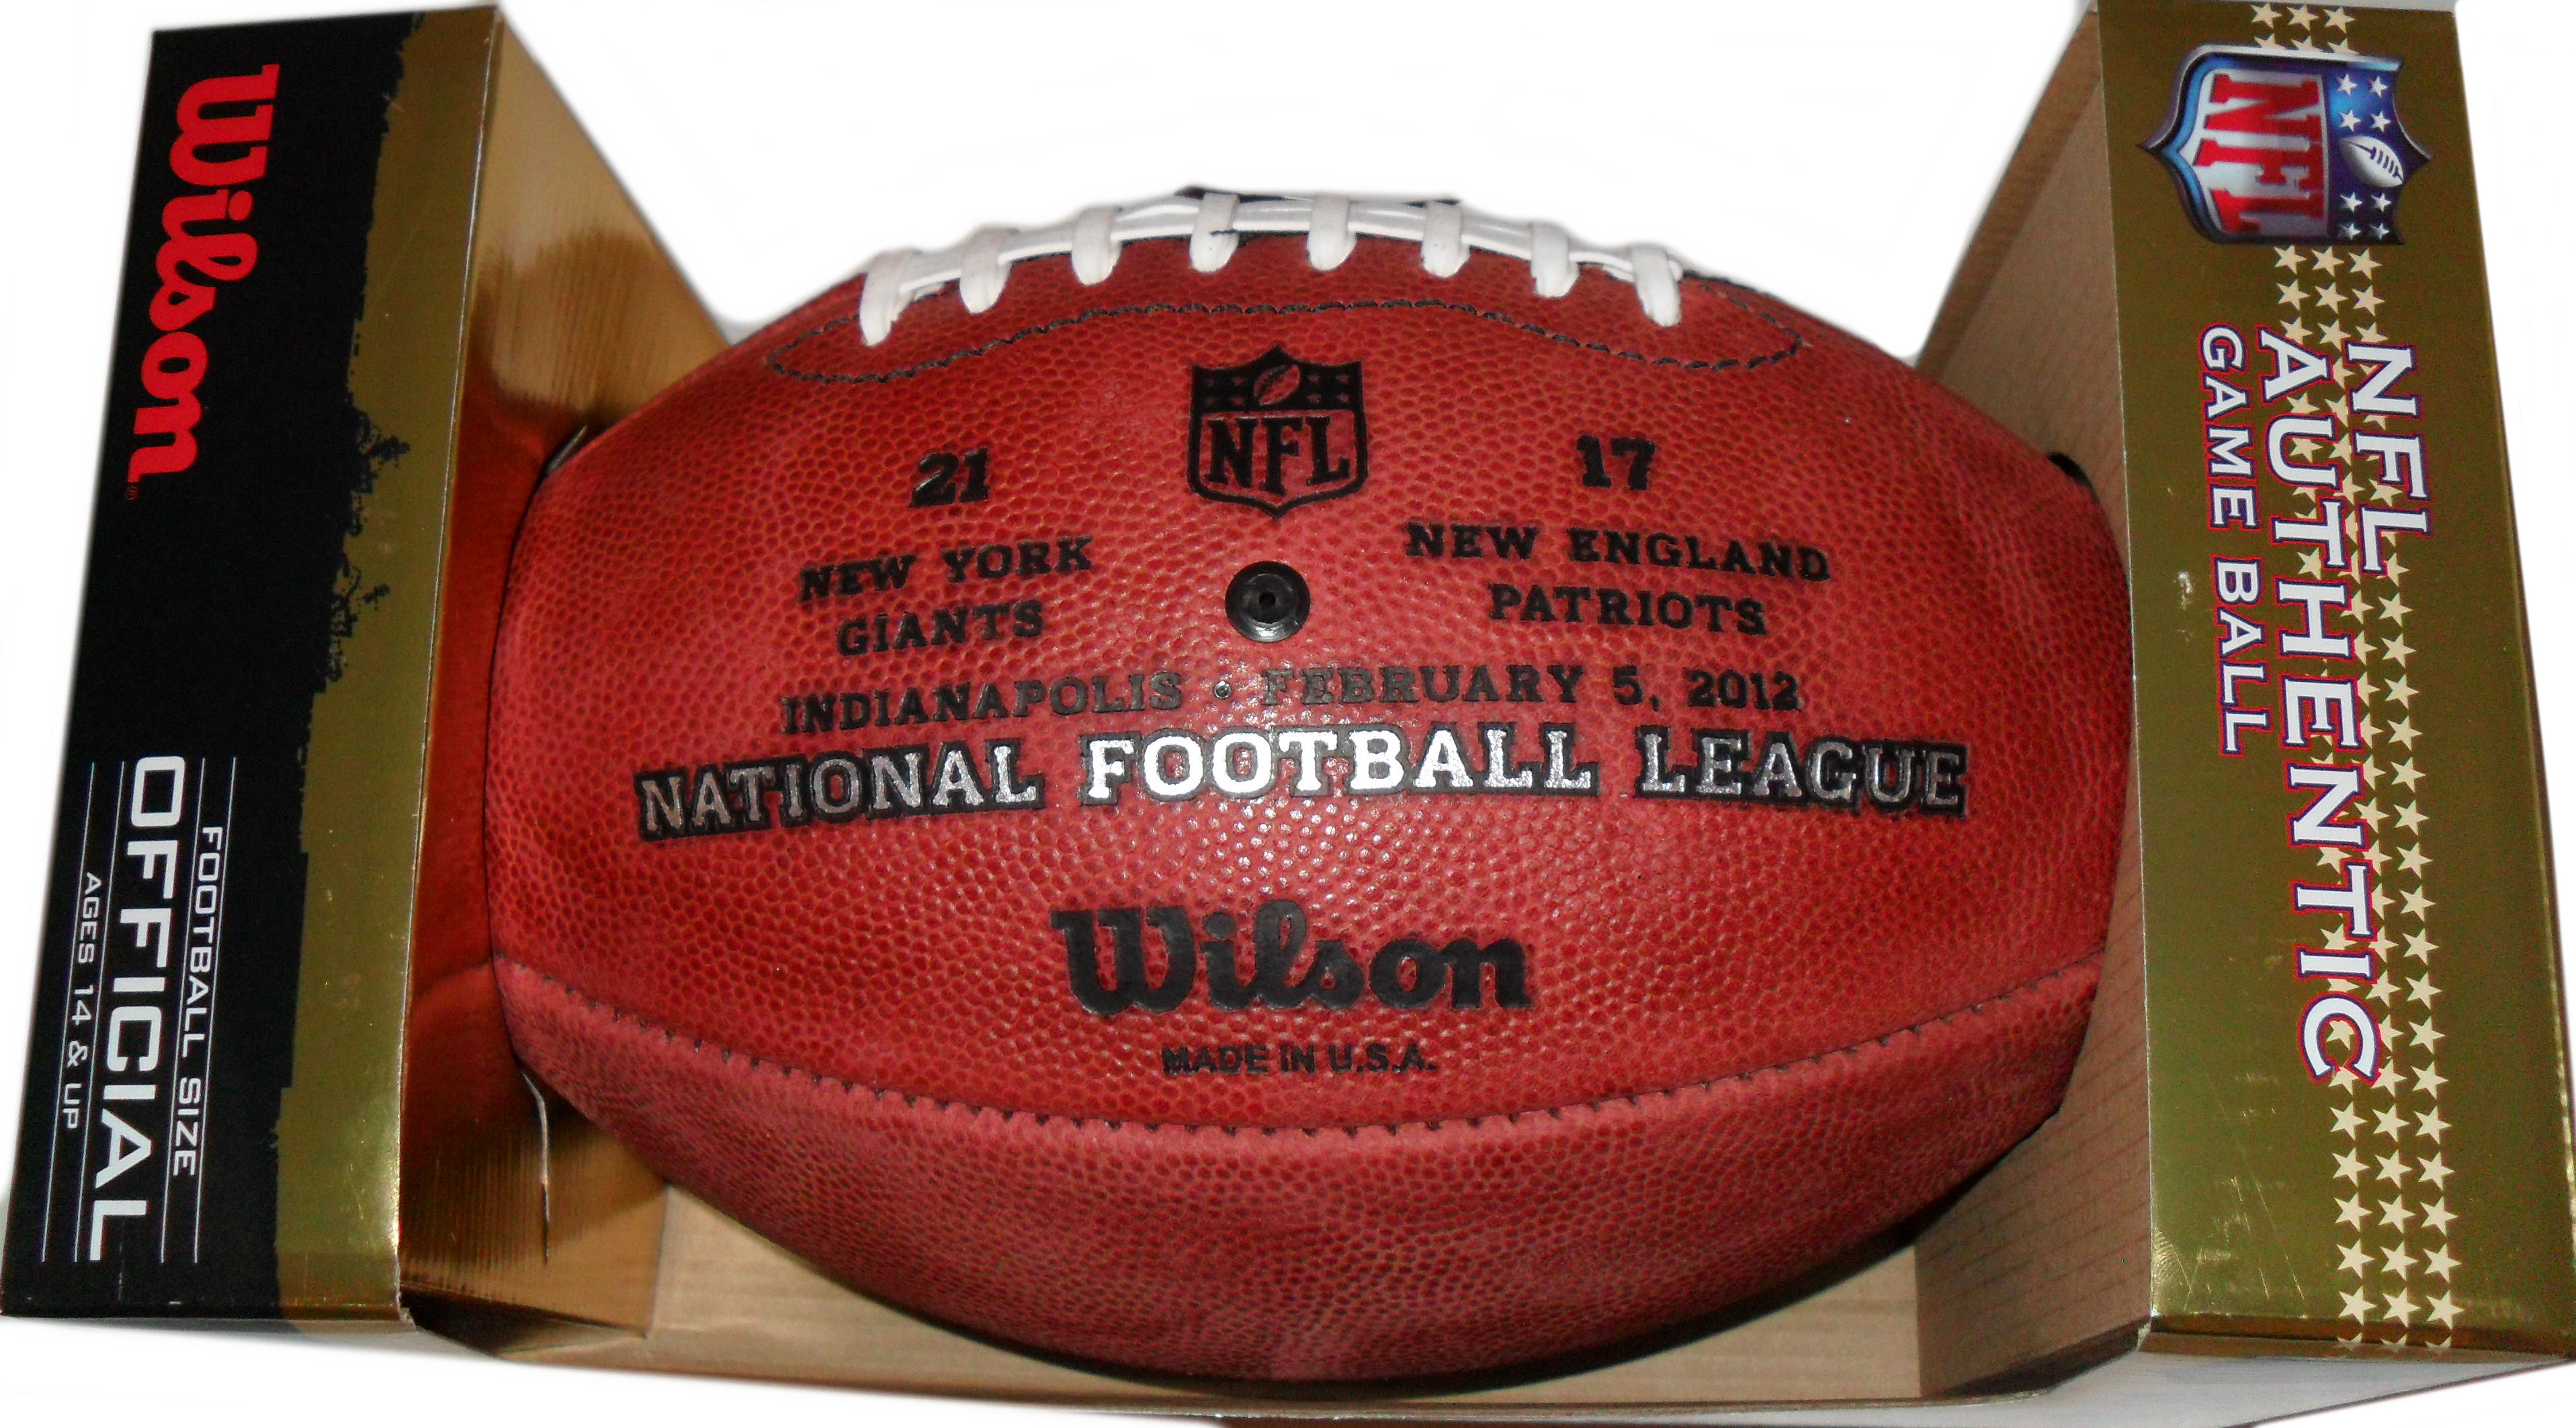 Wilson Football Super Bowl 46 Limited Edition Giants vs Patriots